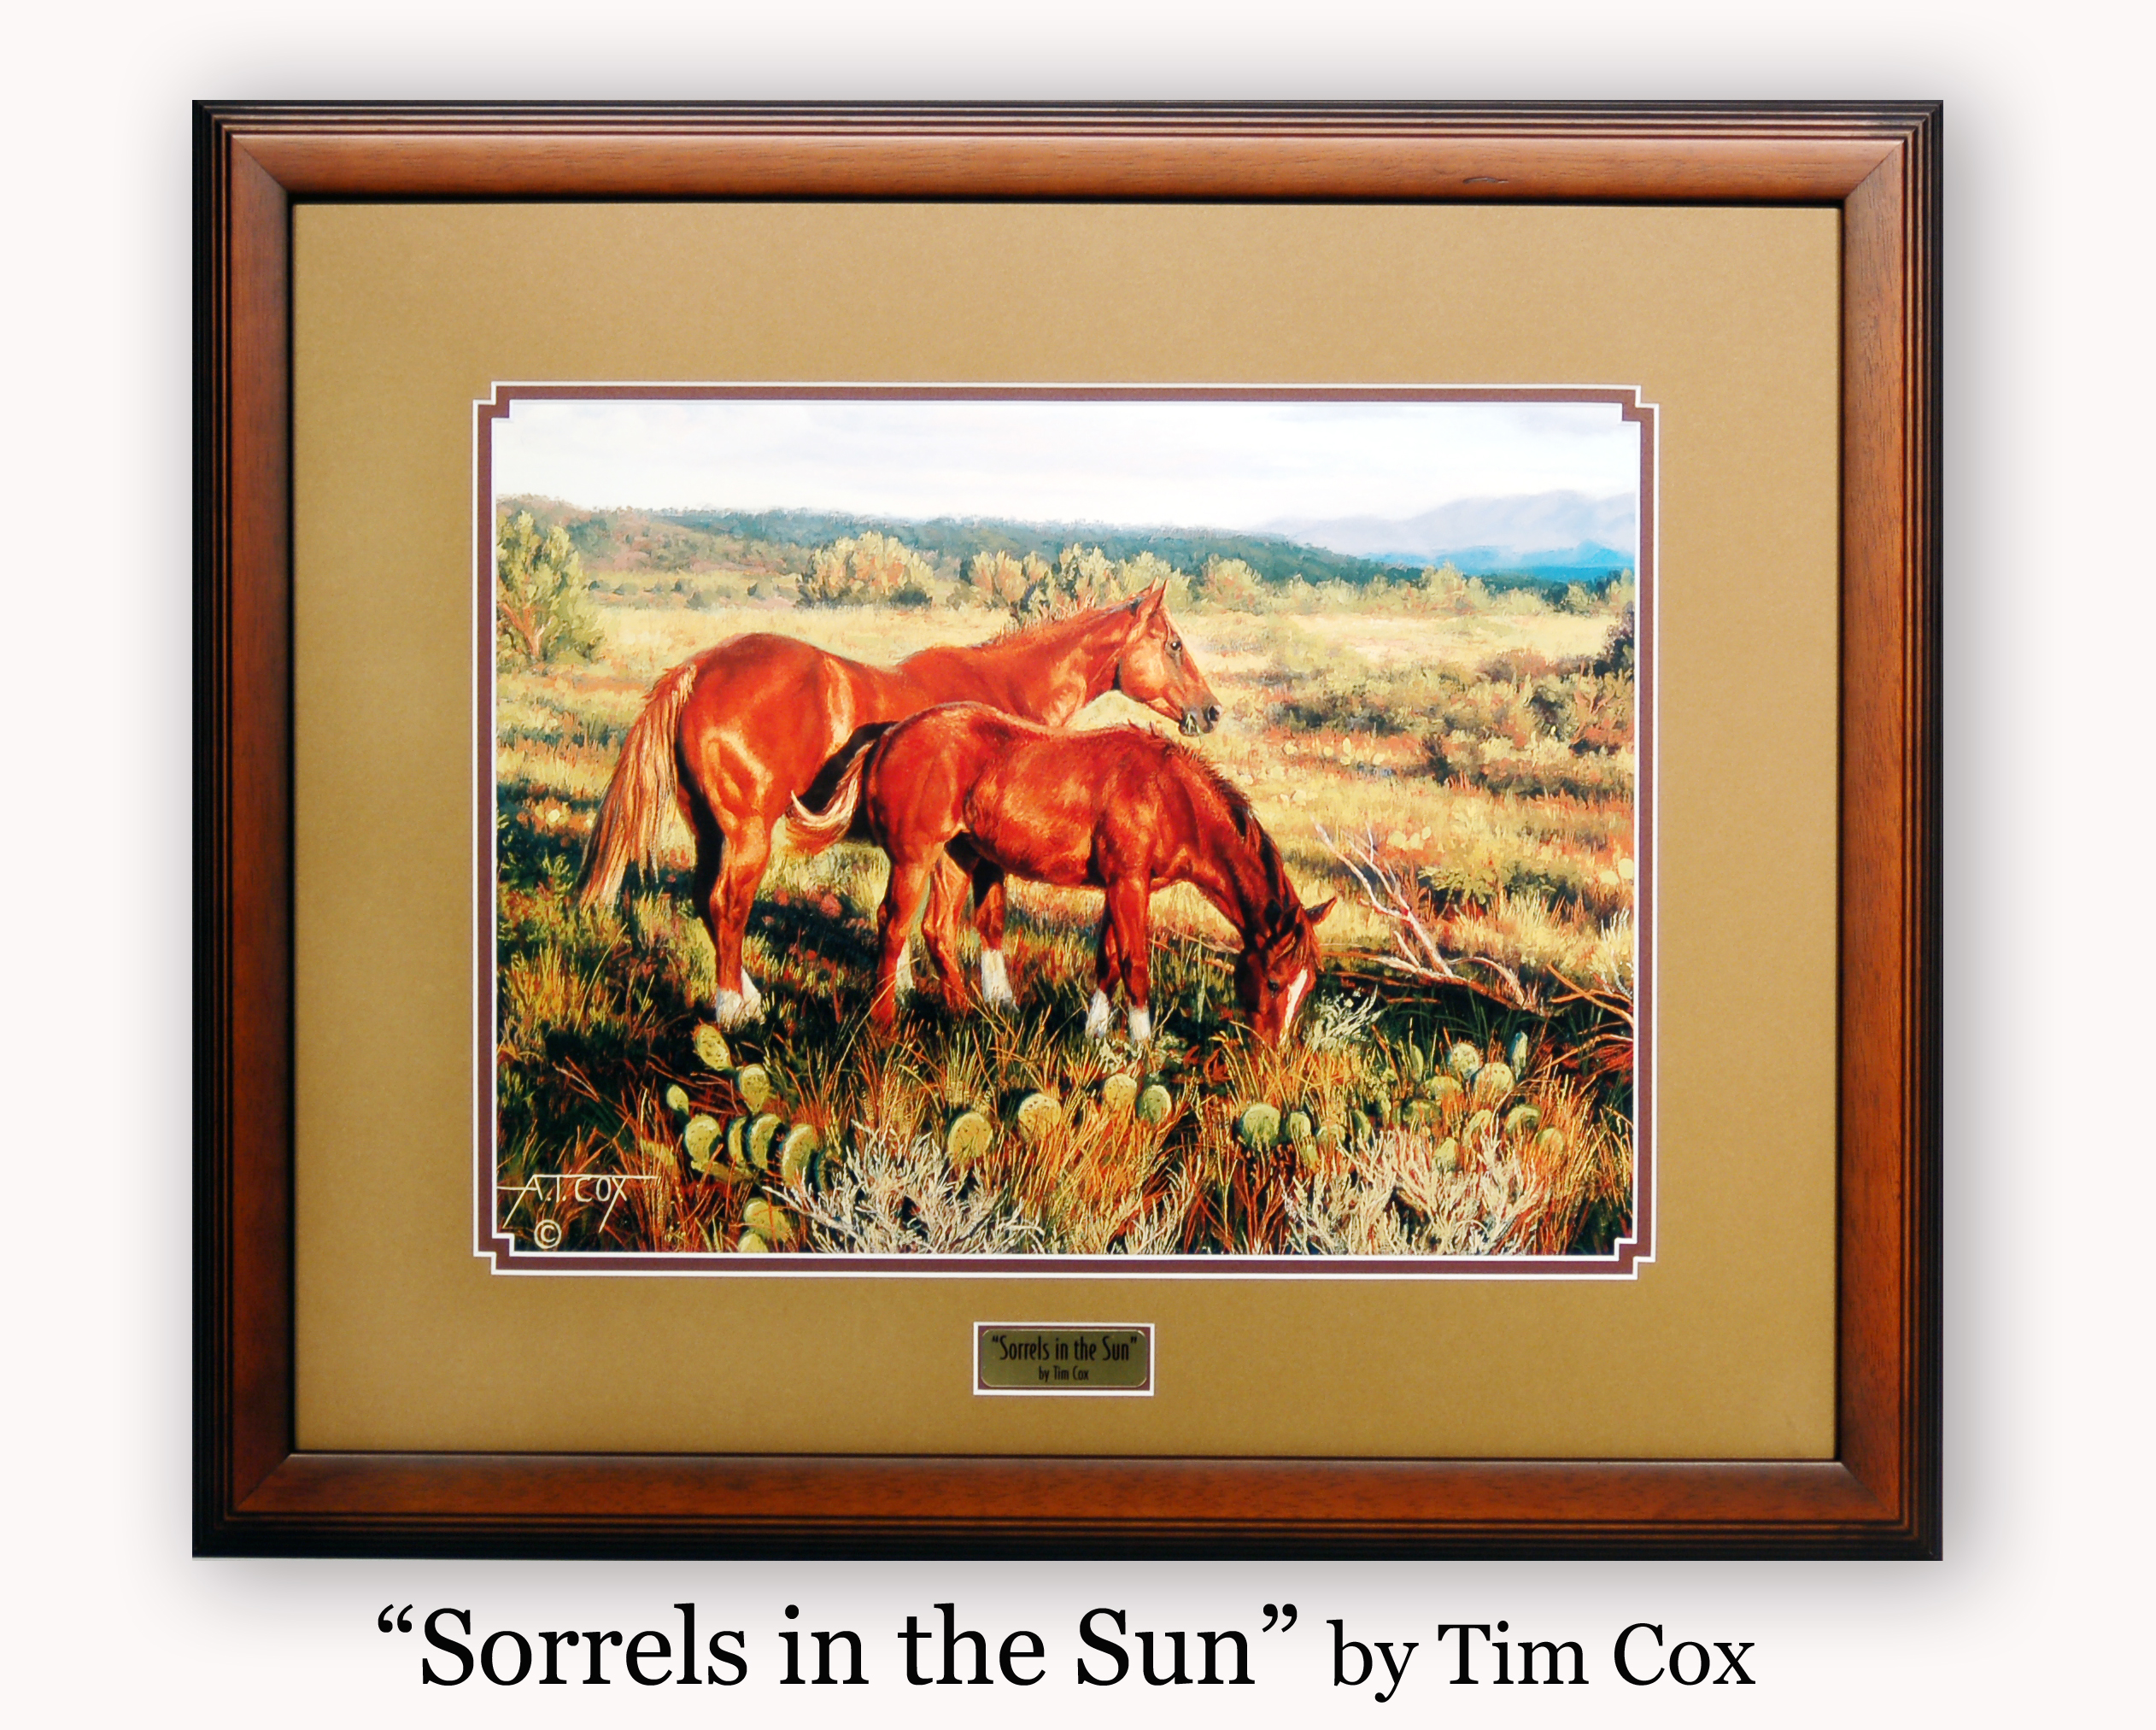 """Sorrels in the Sun by Tim Cox"